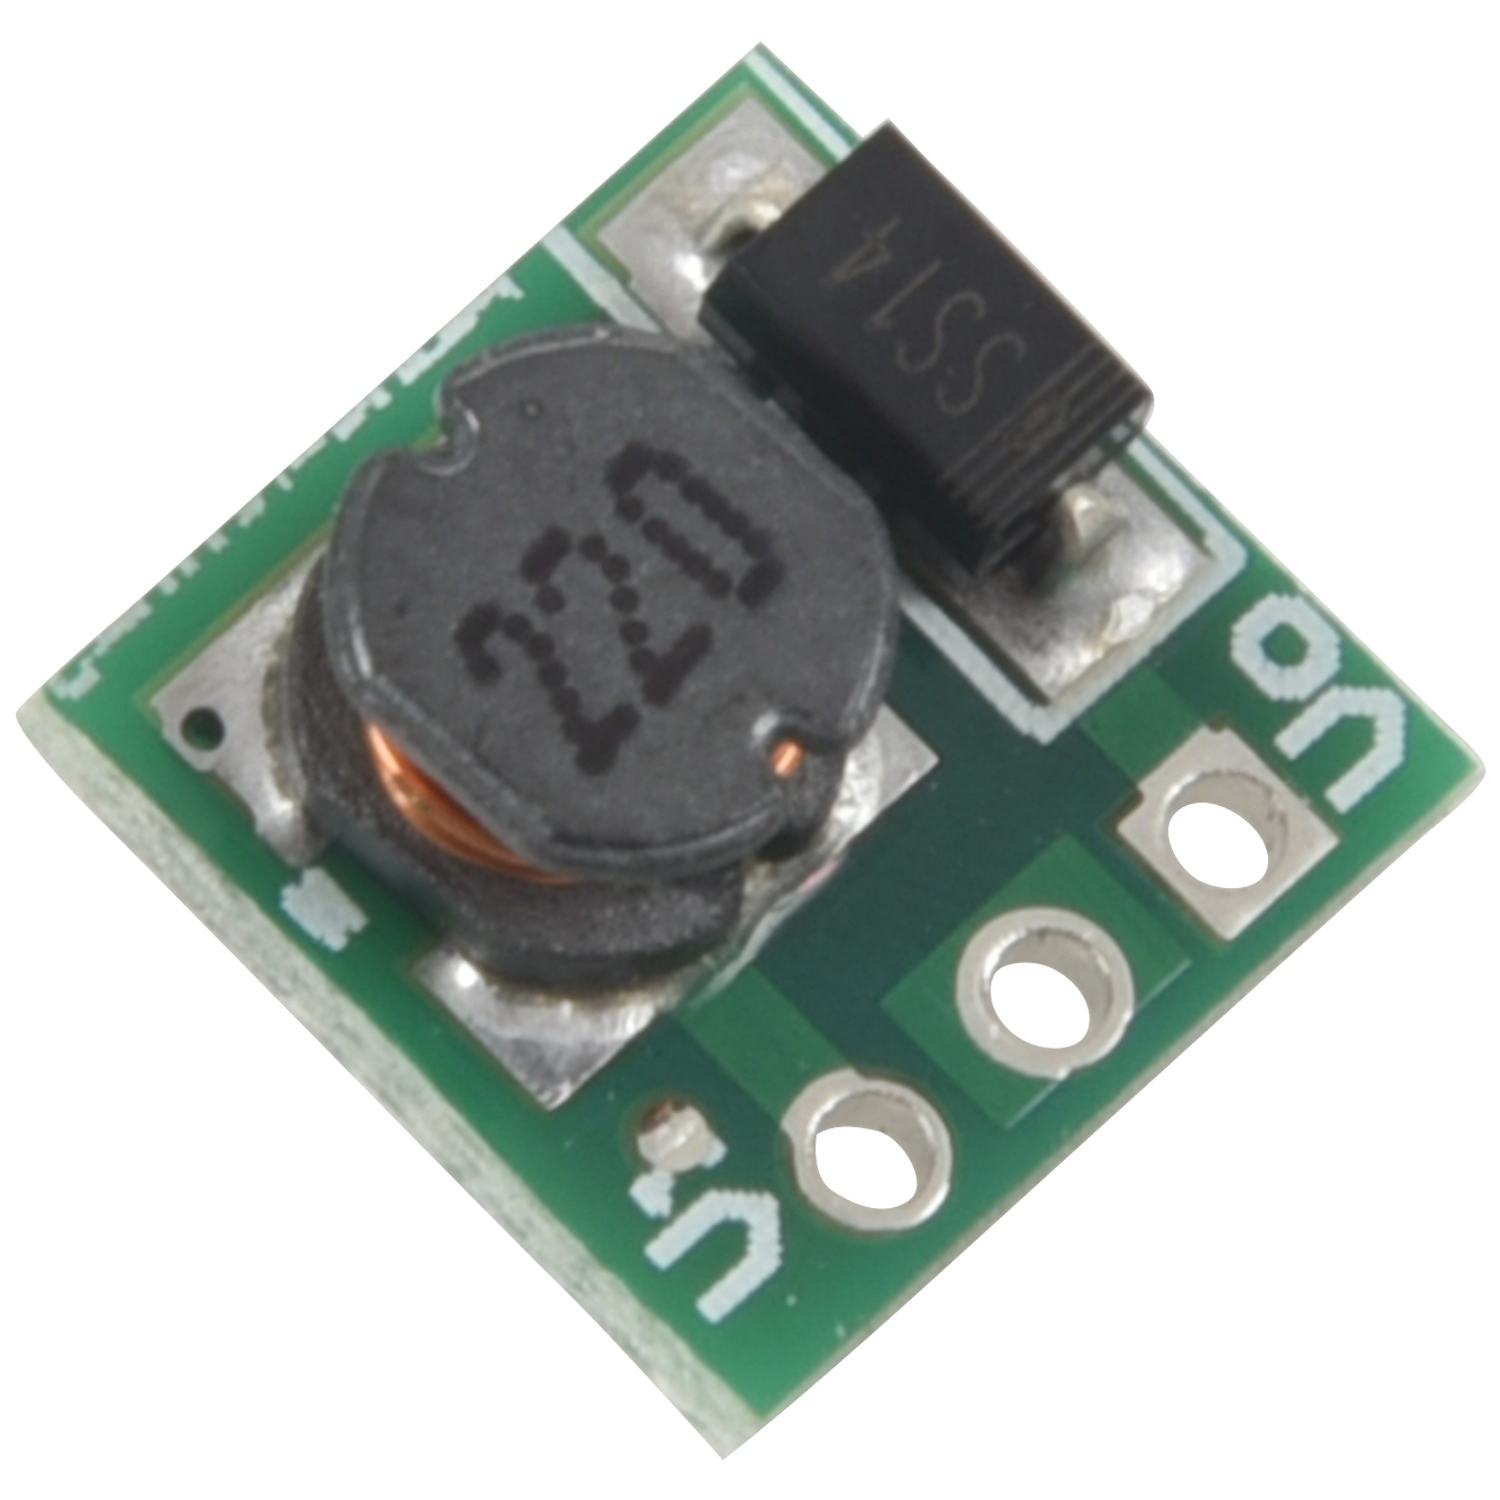 0 9 5V To 5V DC DC Step Up Power Module Voltage Boost Converter Board 1 5V 1 8V 2 5V 3V 3 3V 3 7V 4 2V To 5V Green in Inverters Converters from Home Improvement